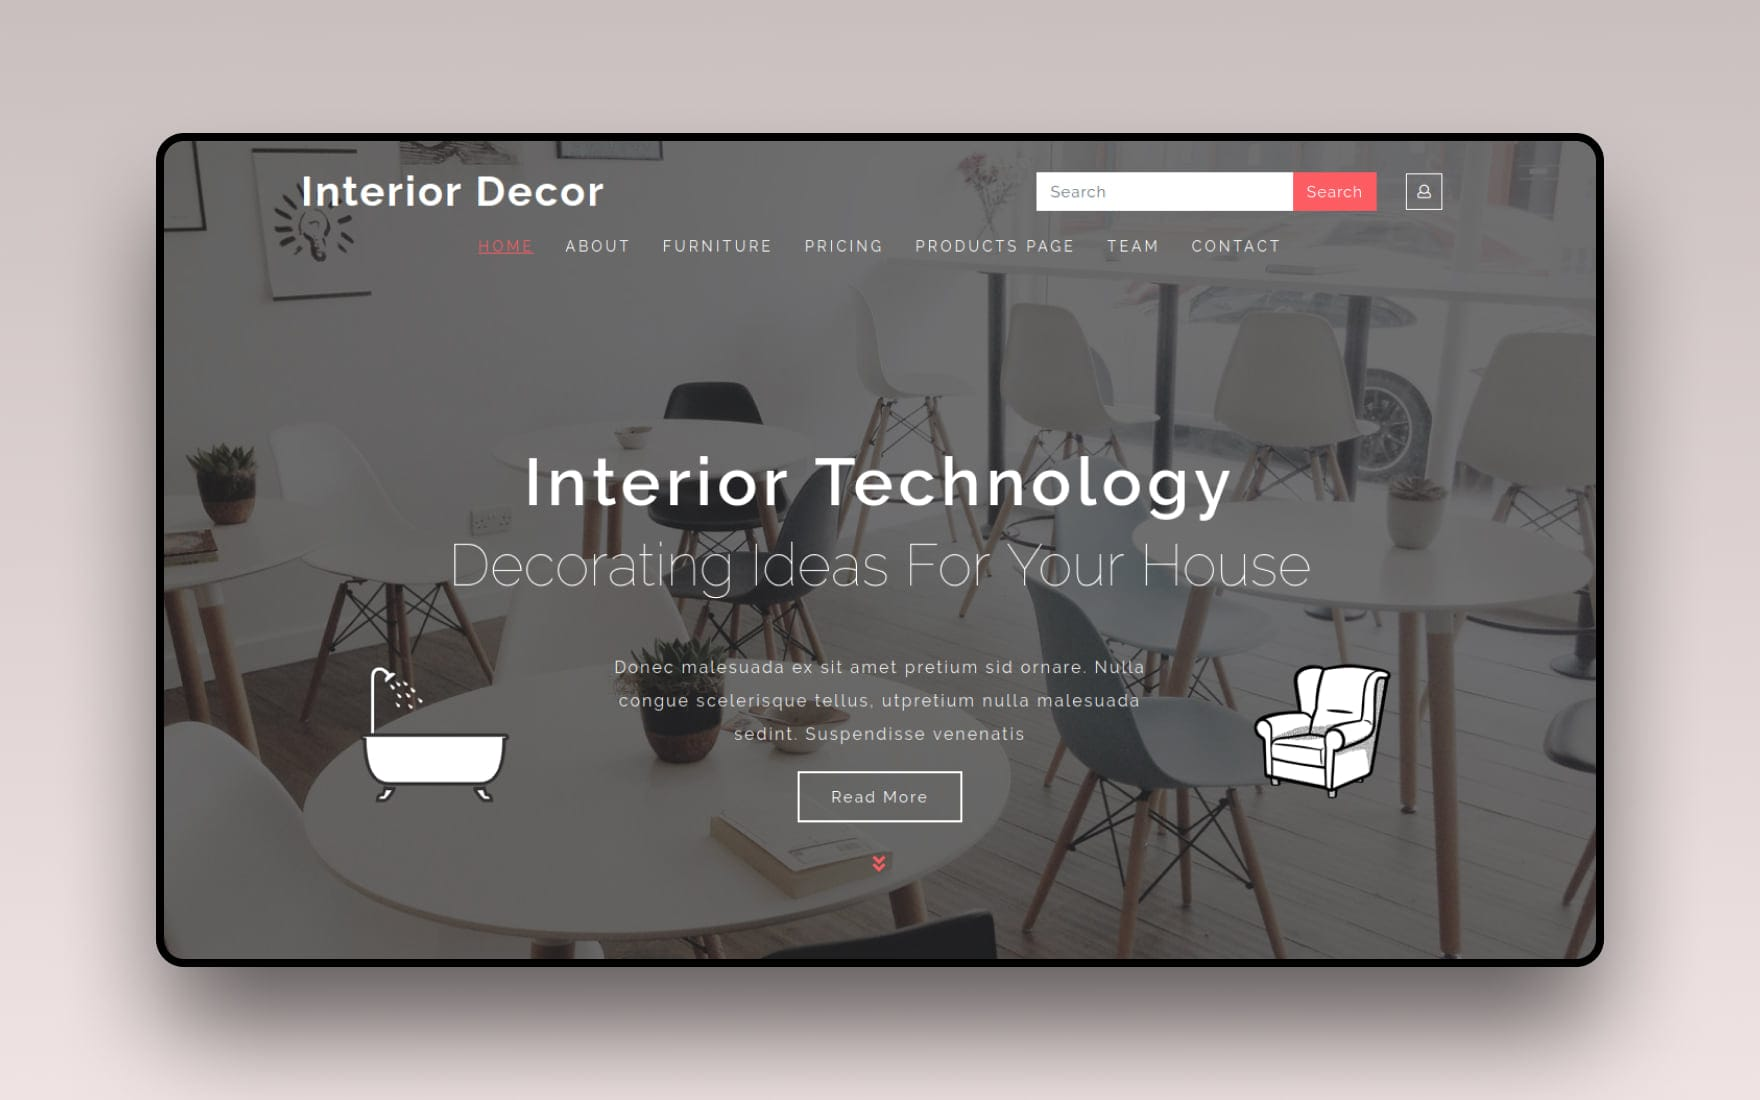 Interior Decor Interior Category Bootstrap Responsive Web Template.